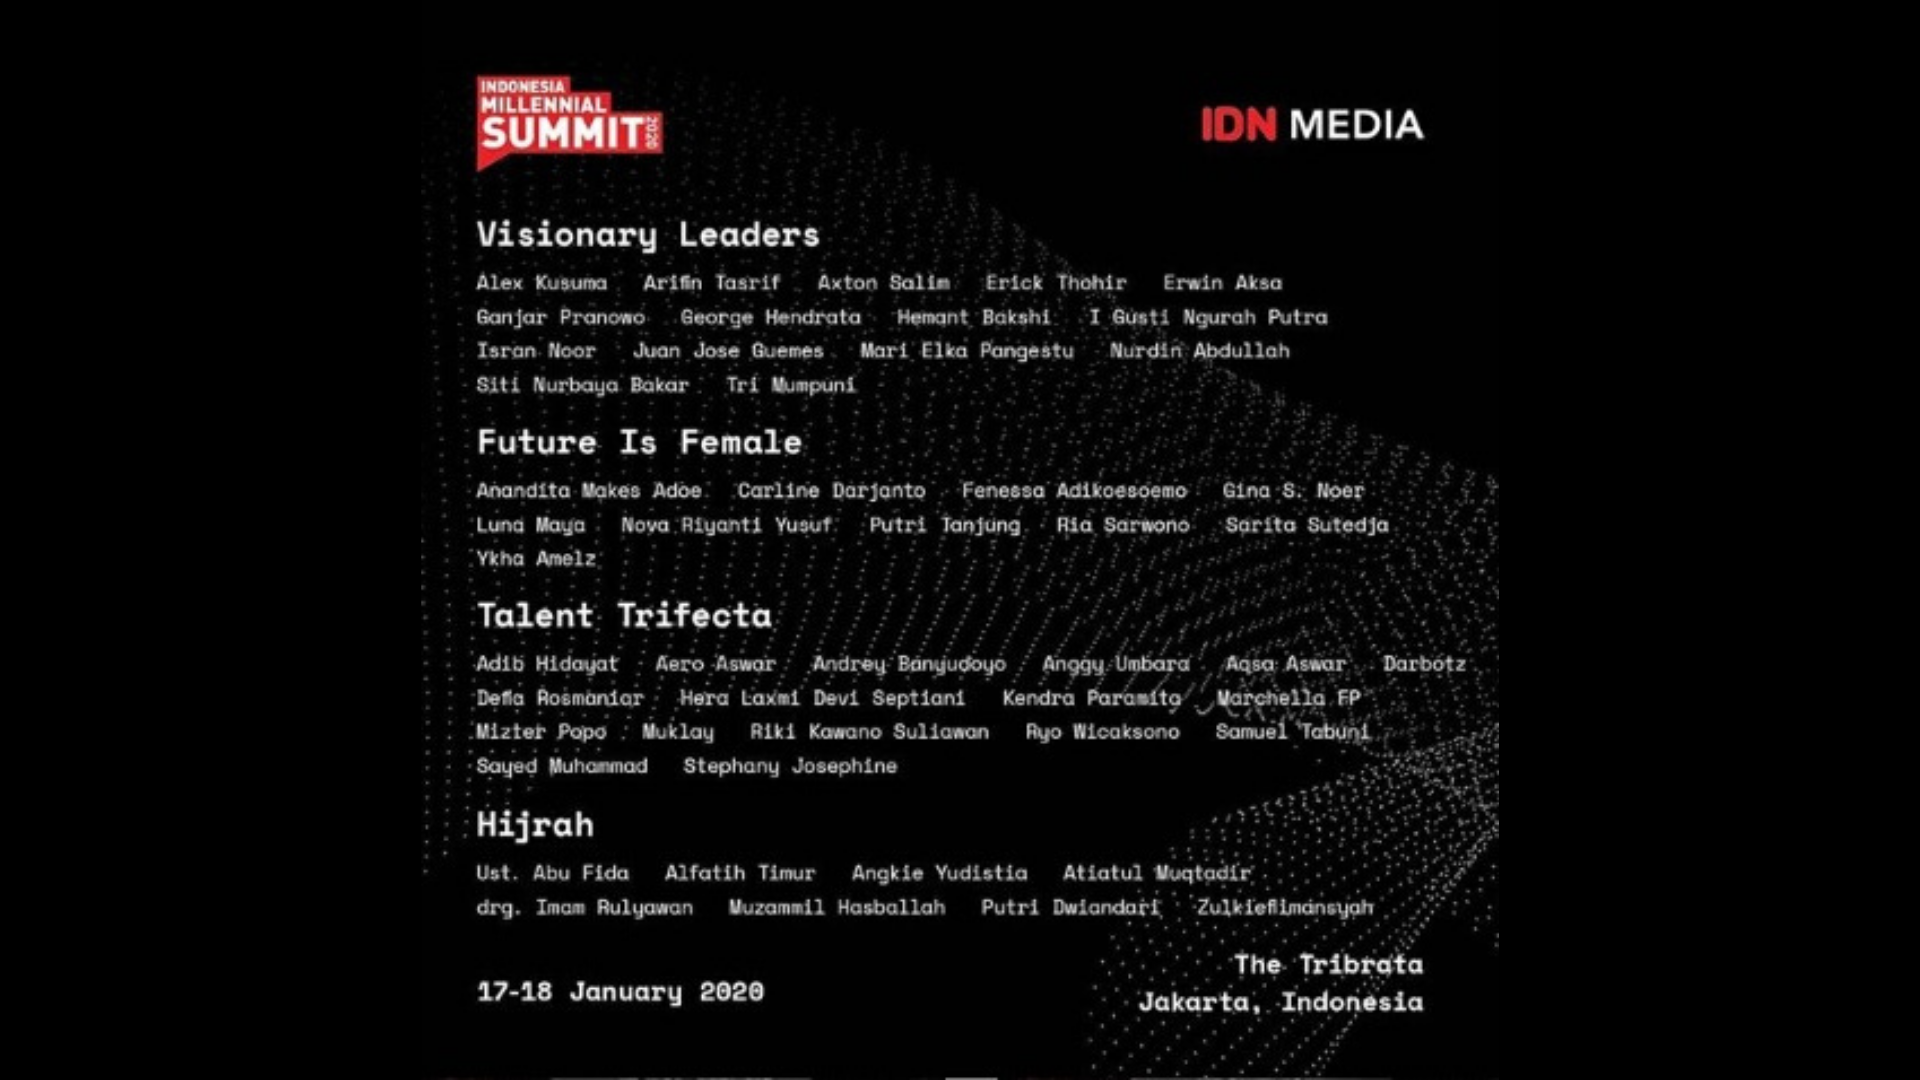 Indonesia Millennial Summit 2020: Newest Line-Up of the Notable Speakers in the Event